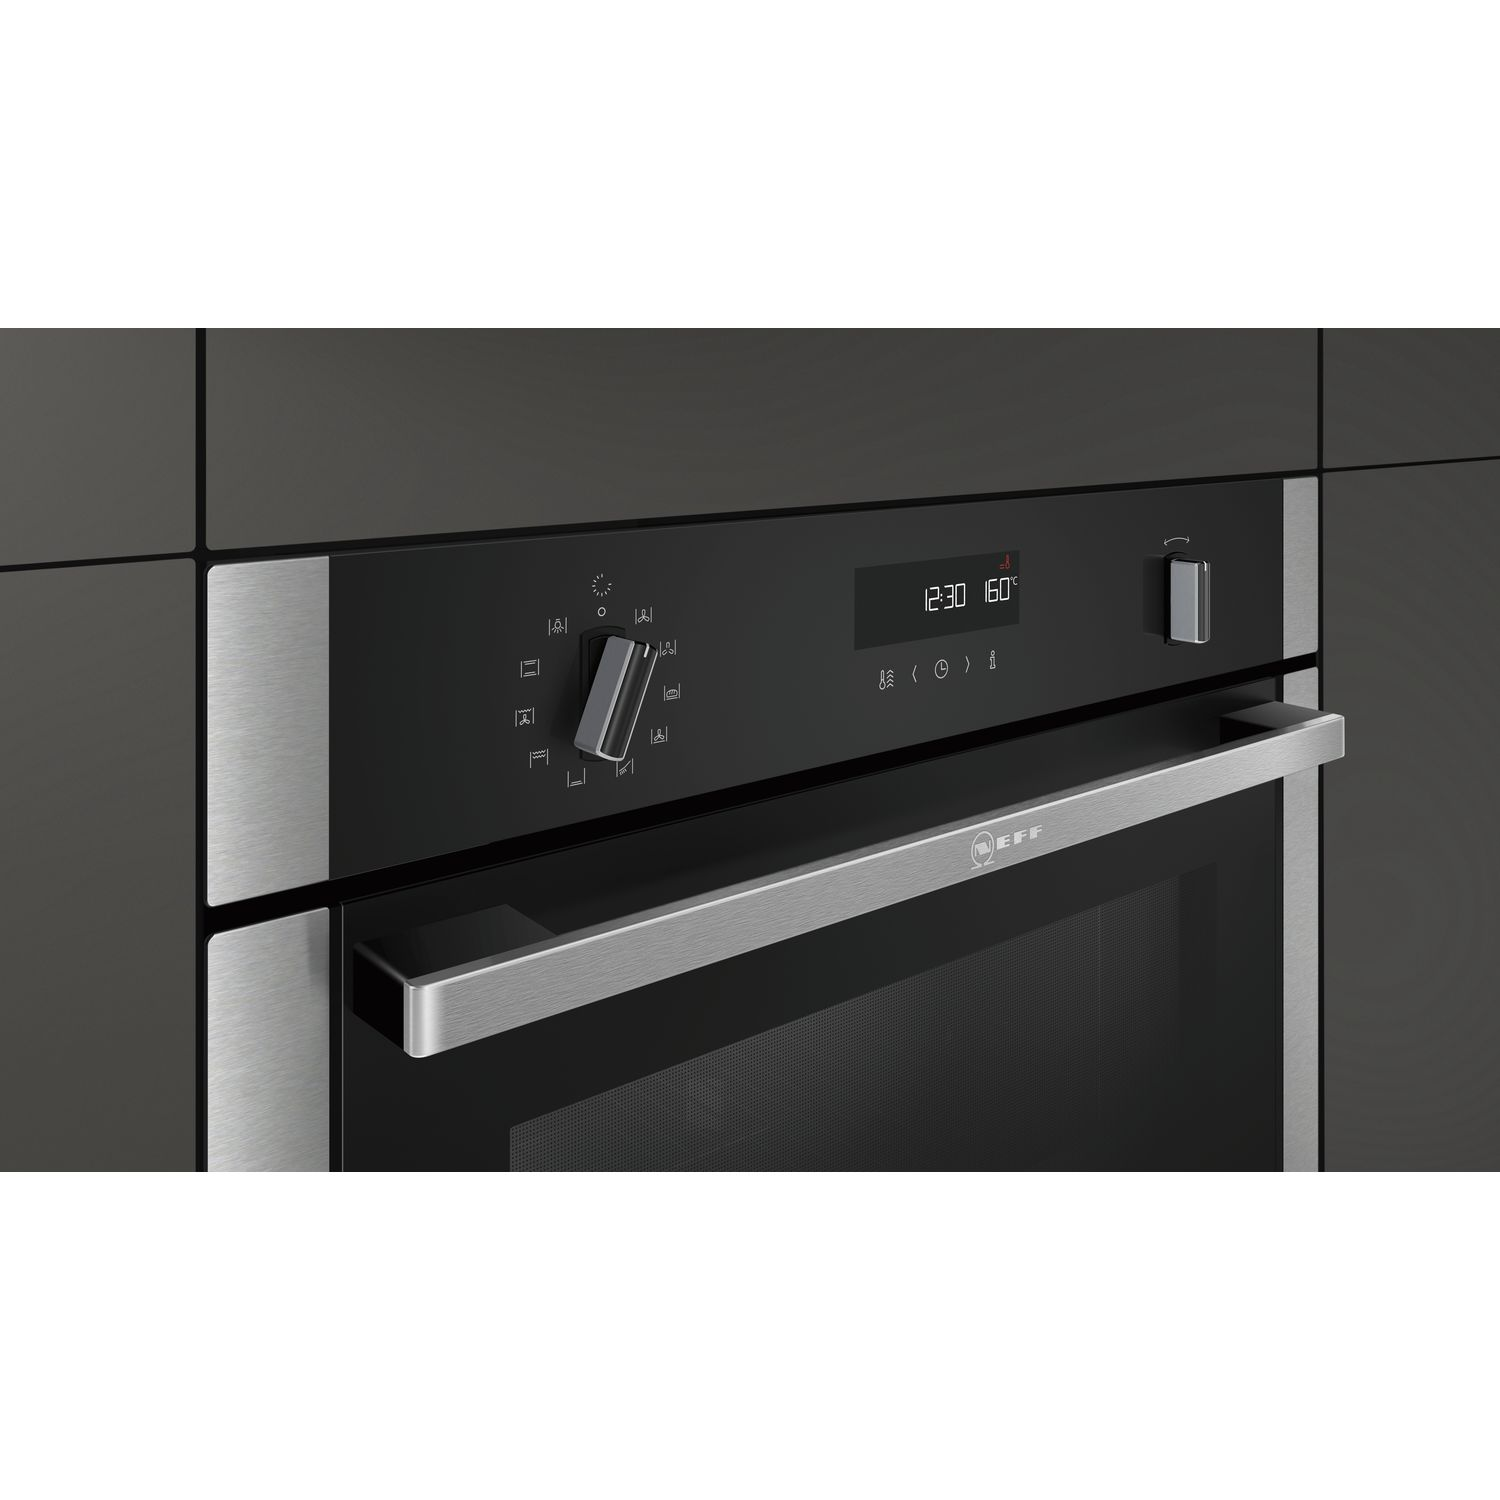 backofen beautiful backofen mega shw bwn neff backofen mit slide hide backofentr neff with. Black Bedroom Furniture Sets. Home Design Ideas